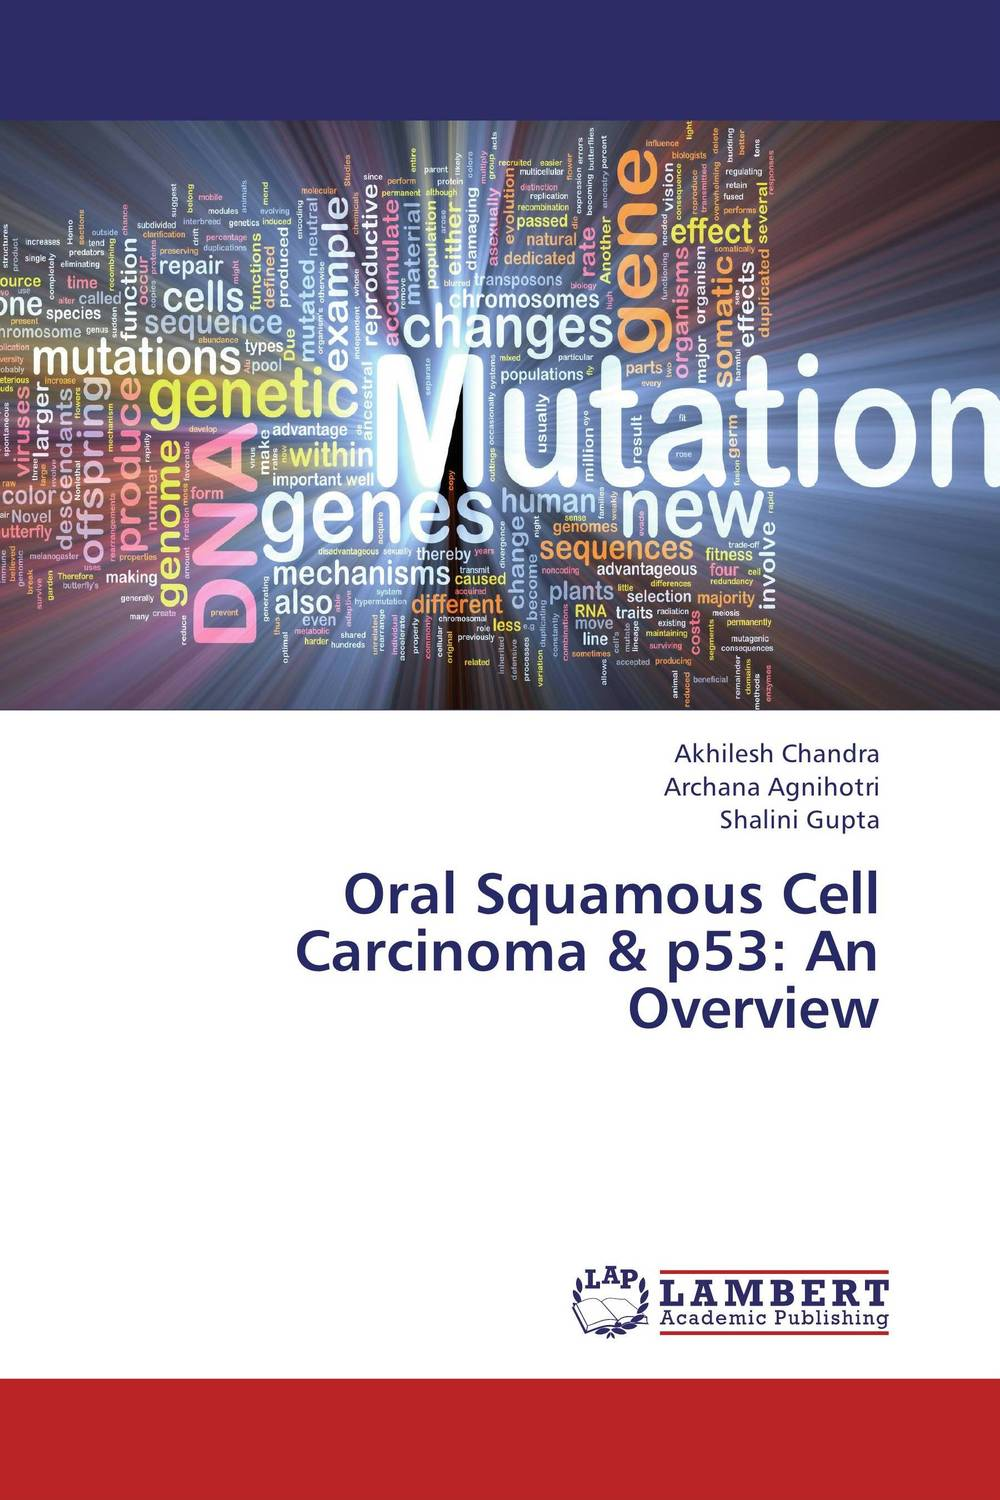 Oral Squamous Cell Carcinoma & p53: An Overview cervical cancer in amhara region in ethiopia